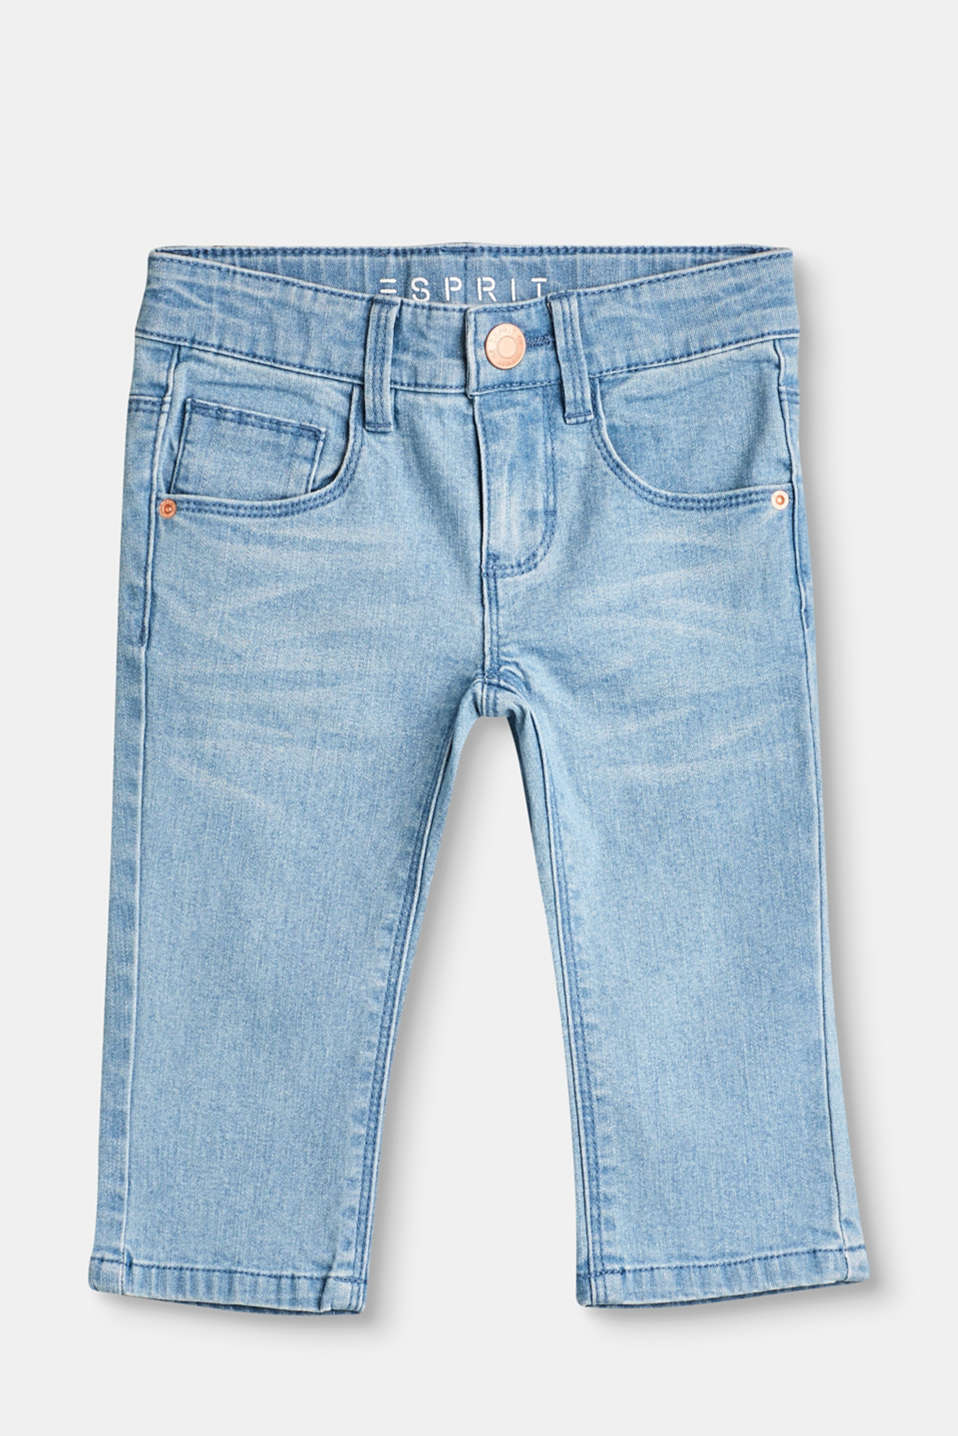 A great summer basic:  these soft stretch jeans in 3/4-length with a practical adjustable waistband